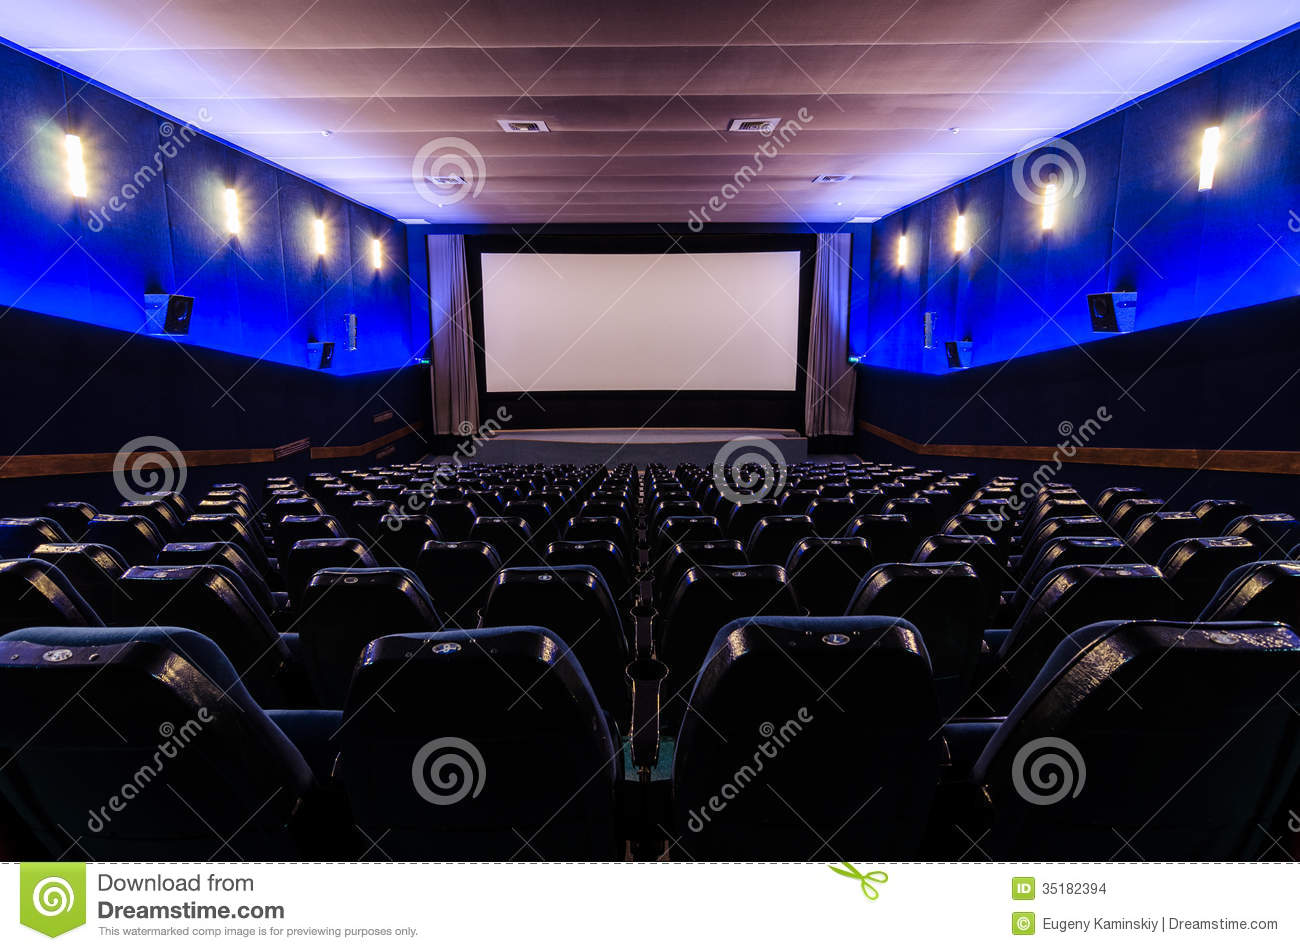 Spotlight Lamp In Cinema Theater Stock Images - Image: 35182394